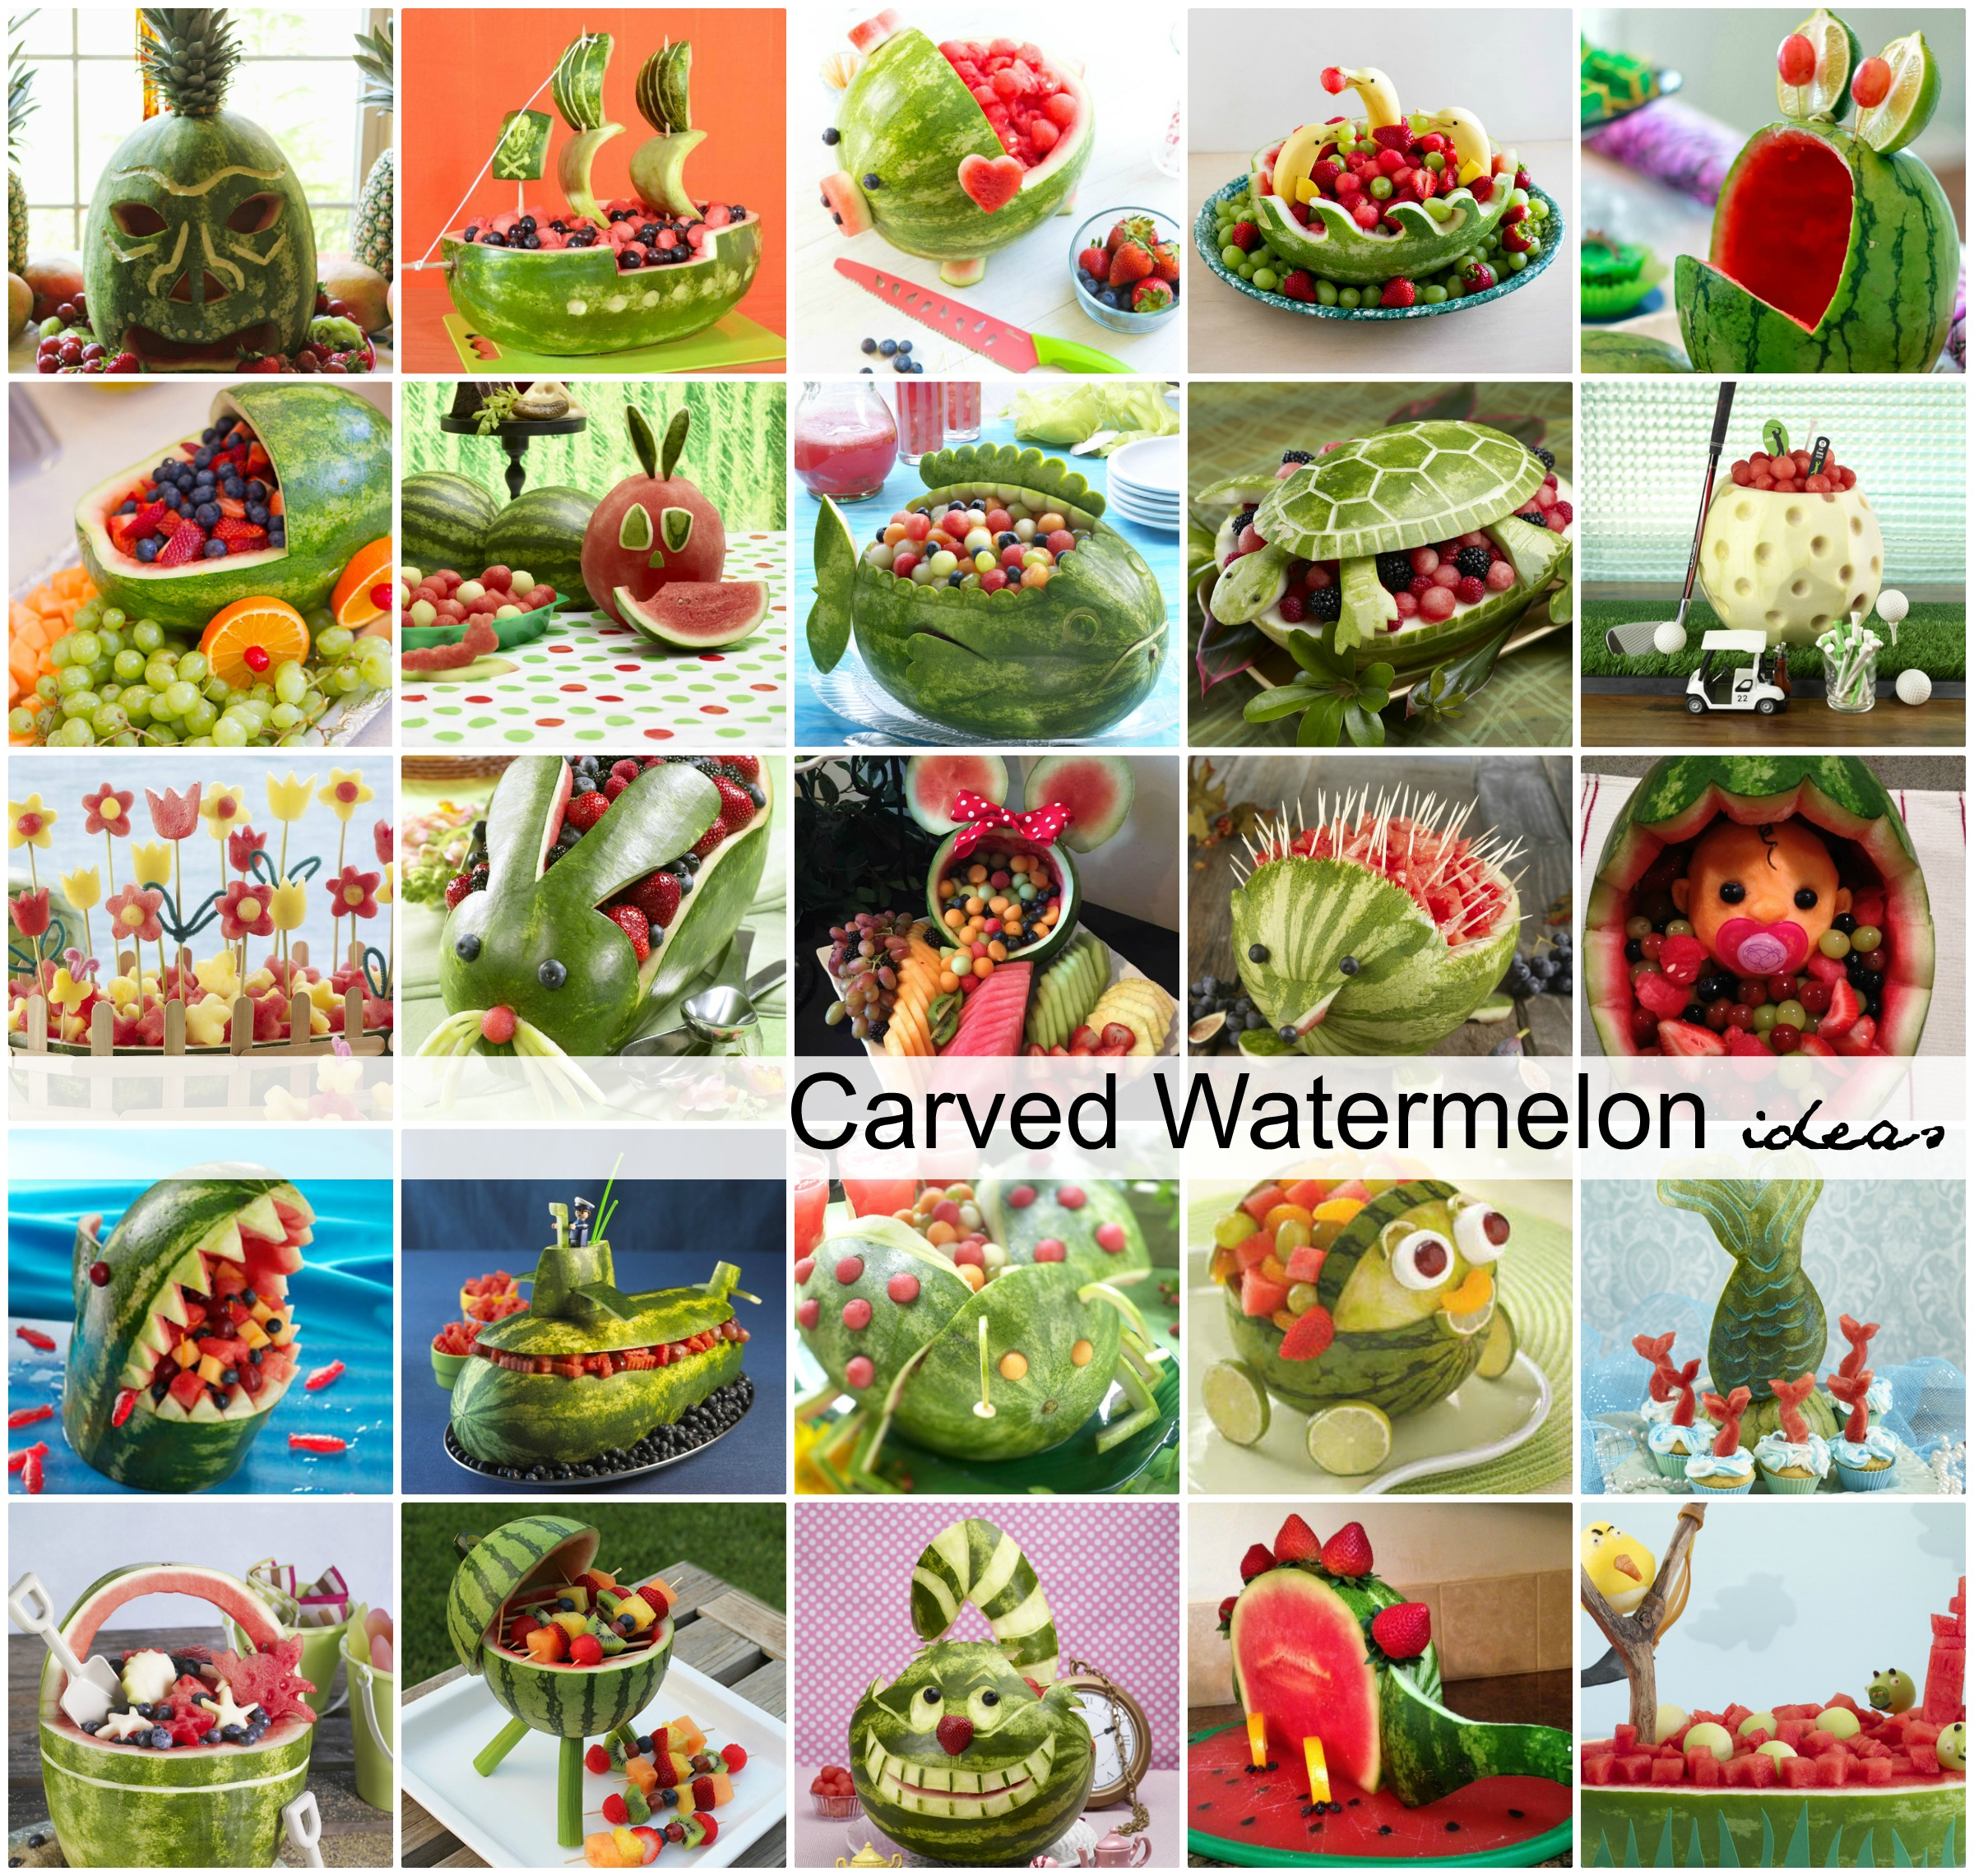 Carved-Watermelon-Ideas-1